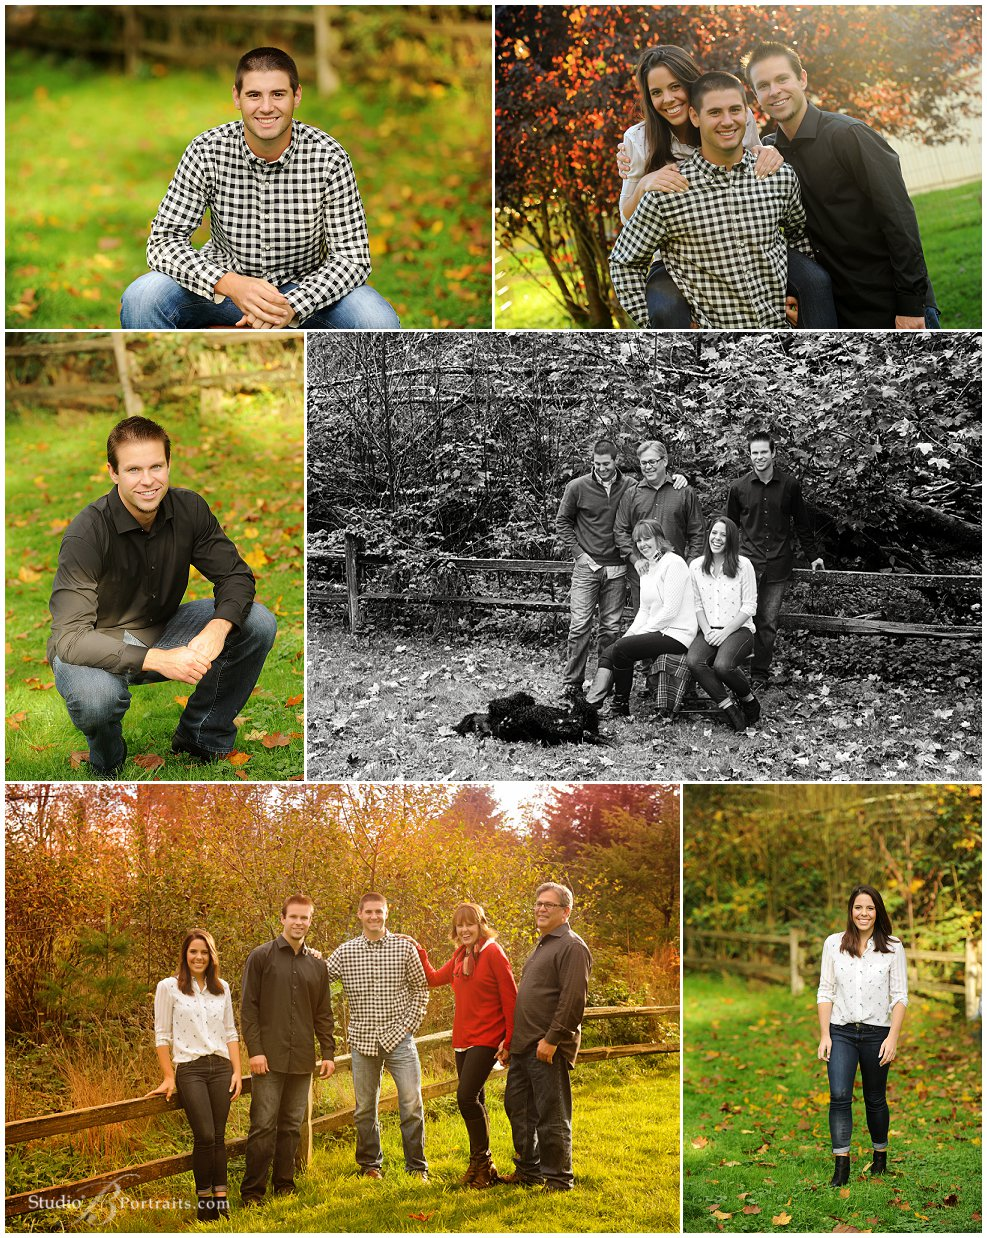 Great Outdoor Family Portraits in Fall_Studio B Portraits_0279.jpg